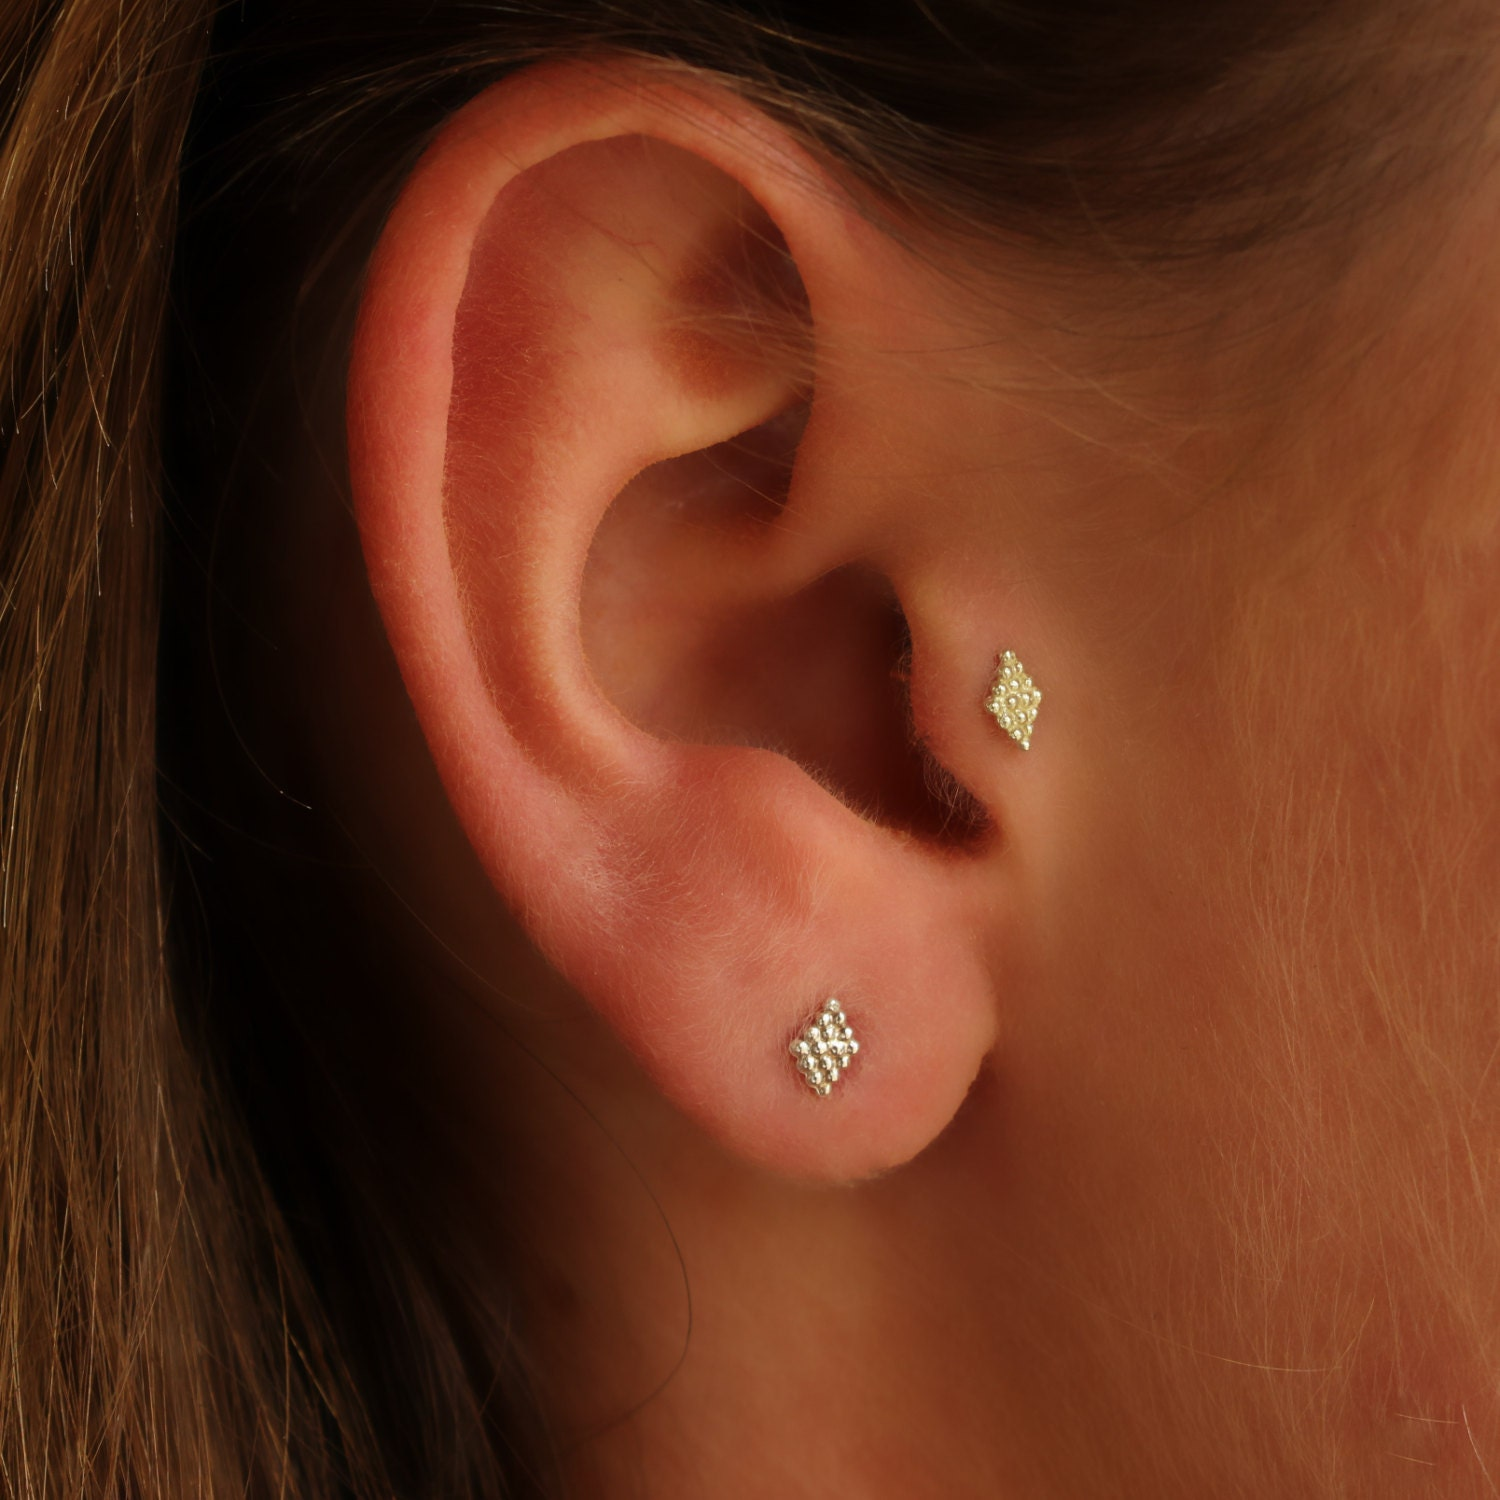 Tragus earrings gold beautify themselves with earrings